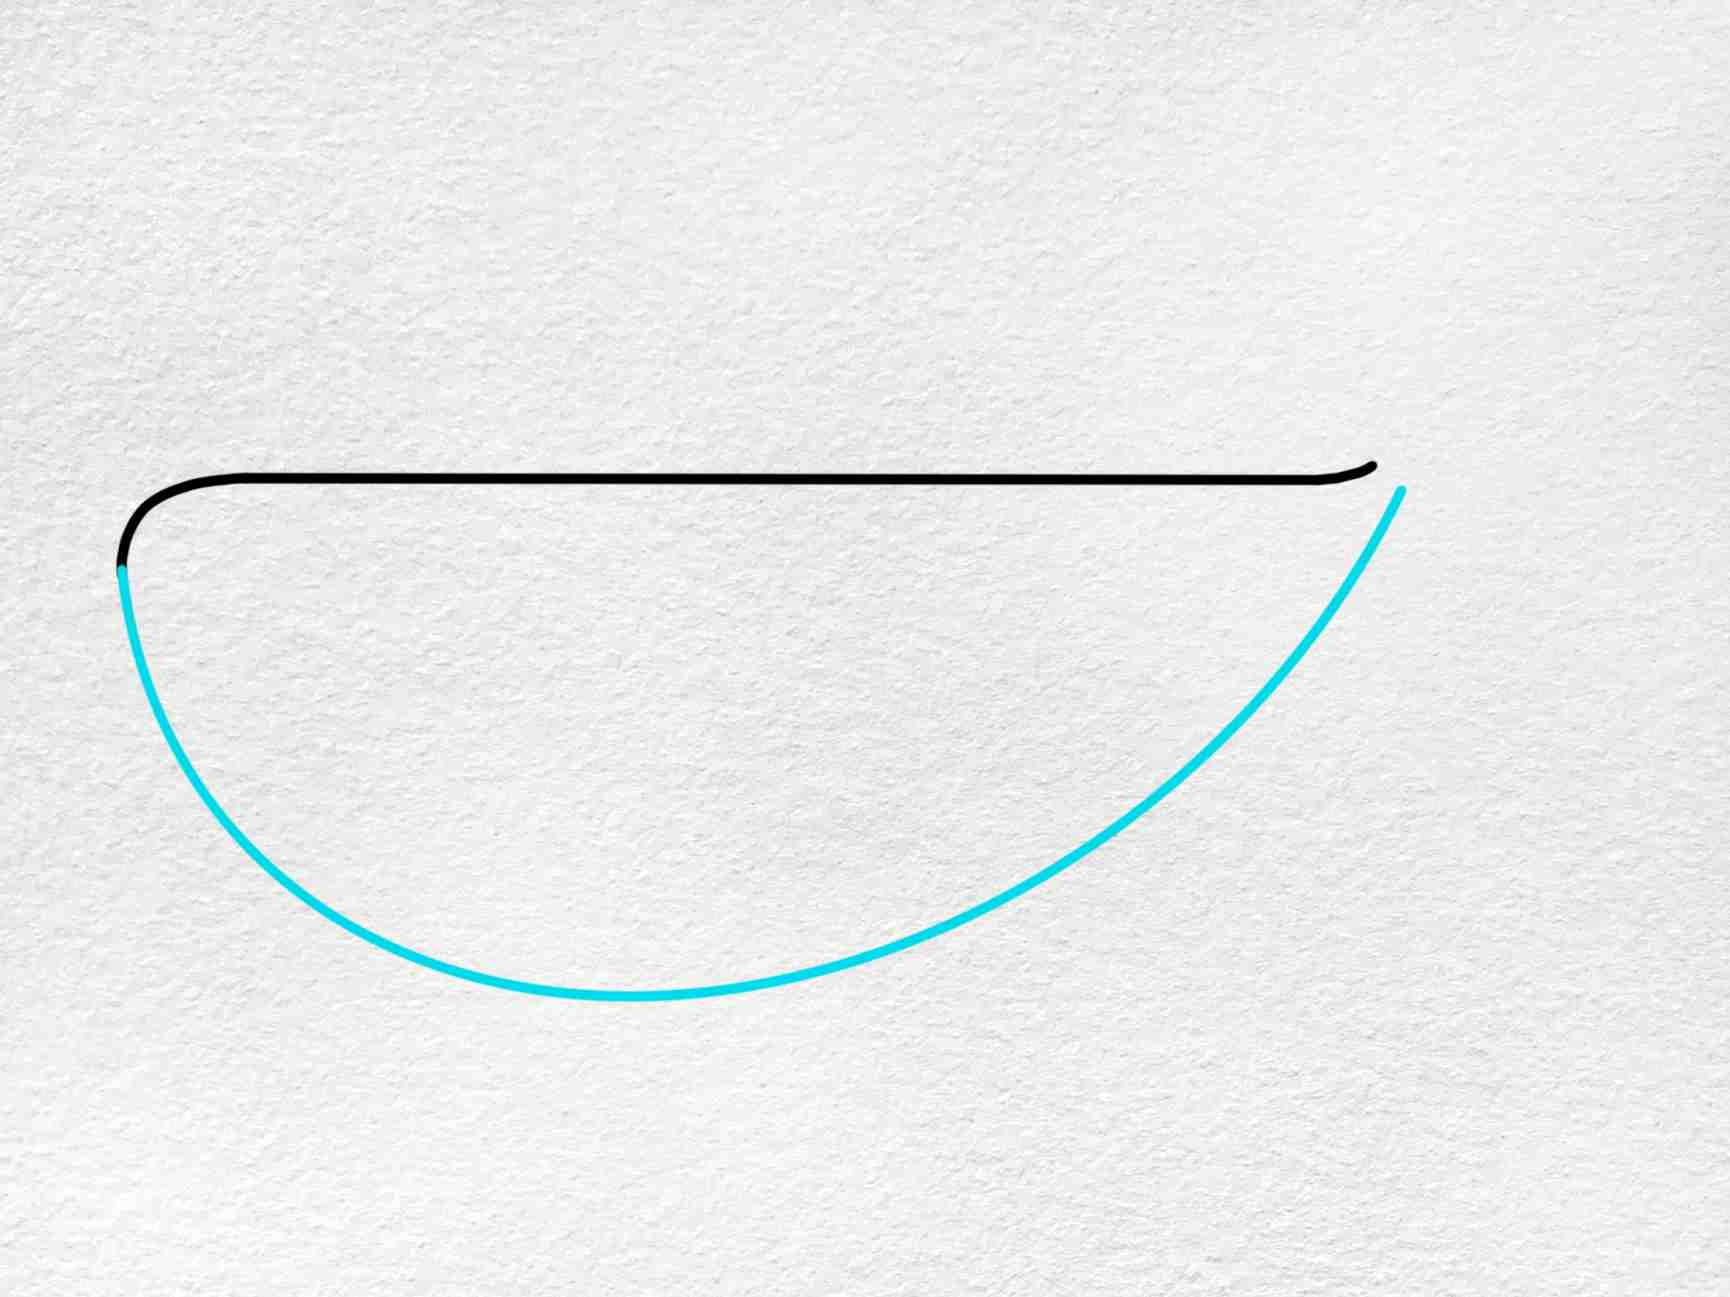 Cute Whale Drawing: Step 2